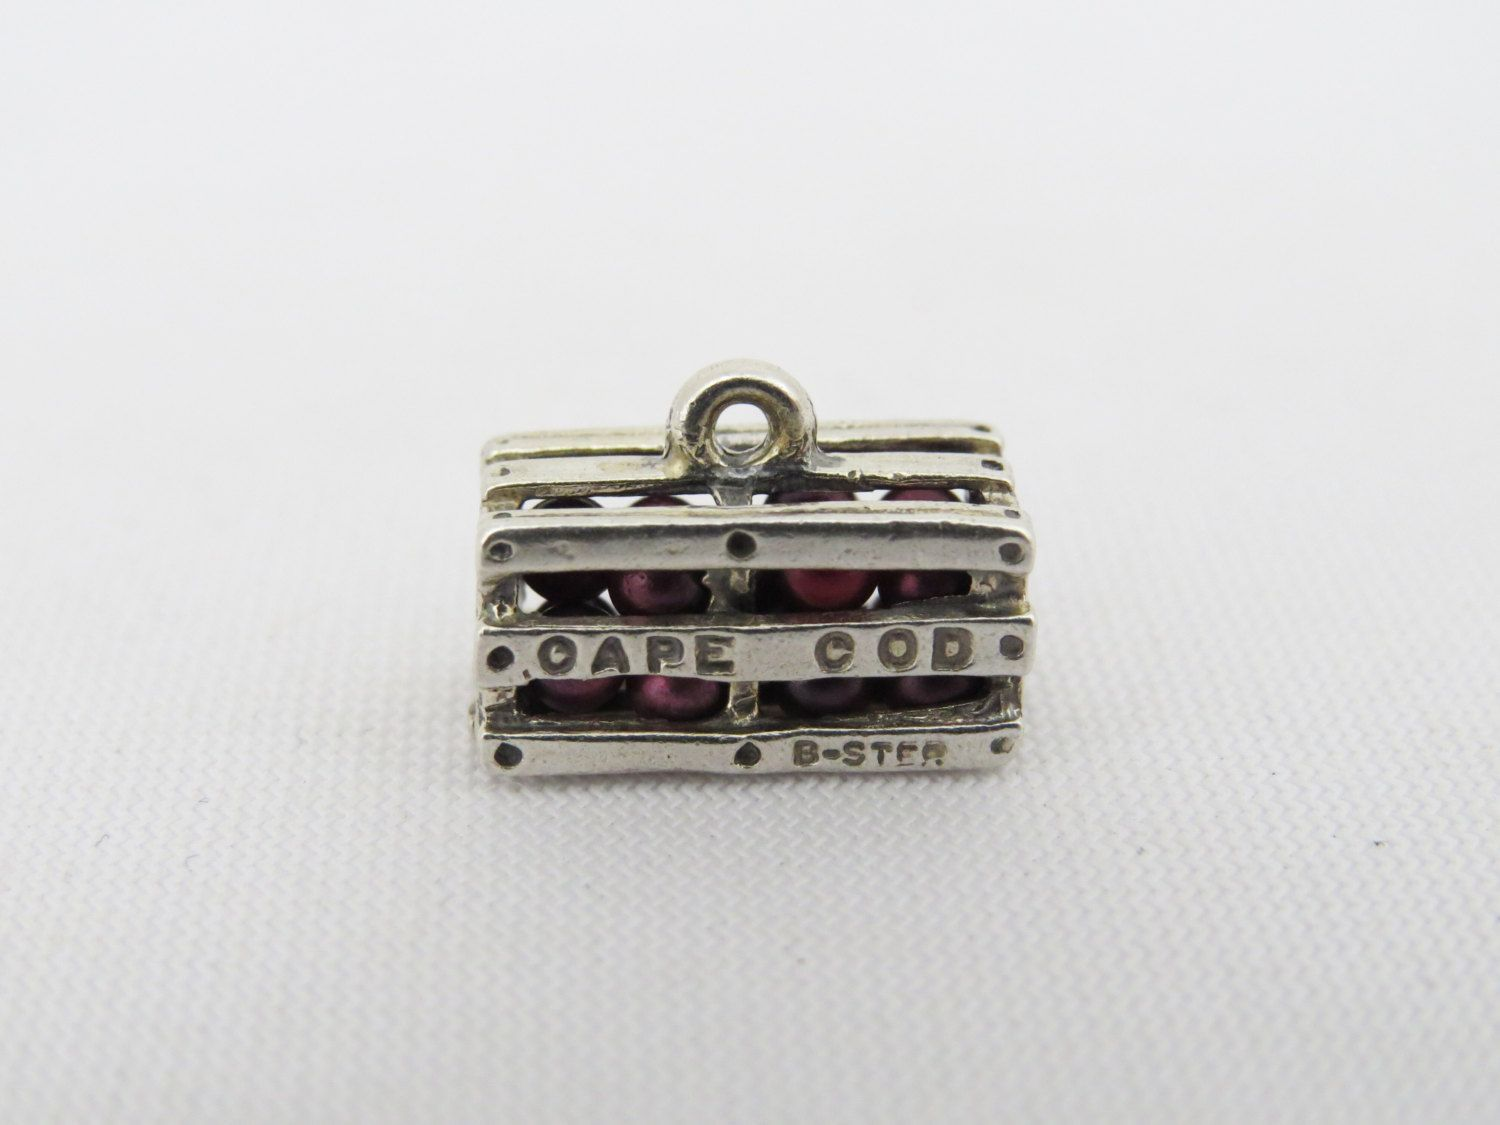 Vintage Beau Sterling Crate Of Cape Cod Cranberries Silver Bracelet Charm  Rare By Wandajewelry2013 On Etsy